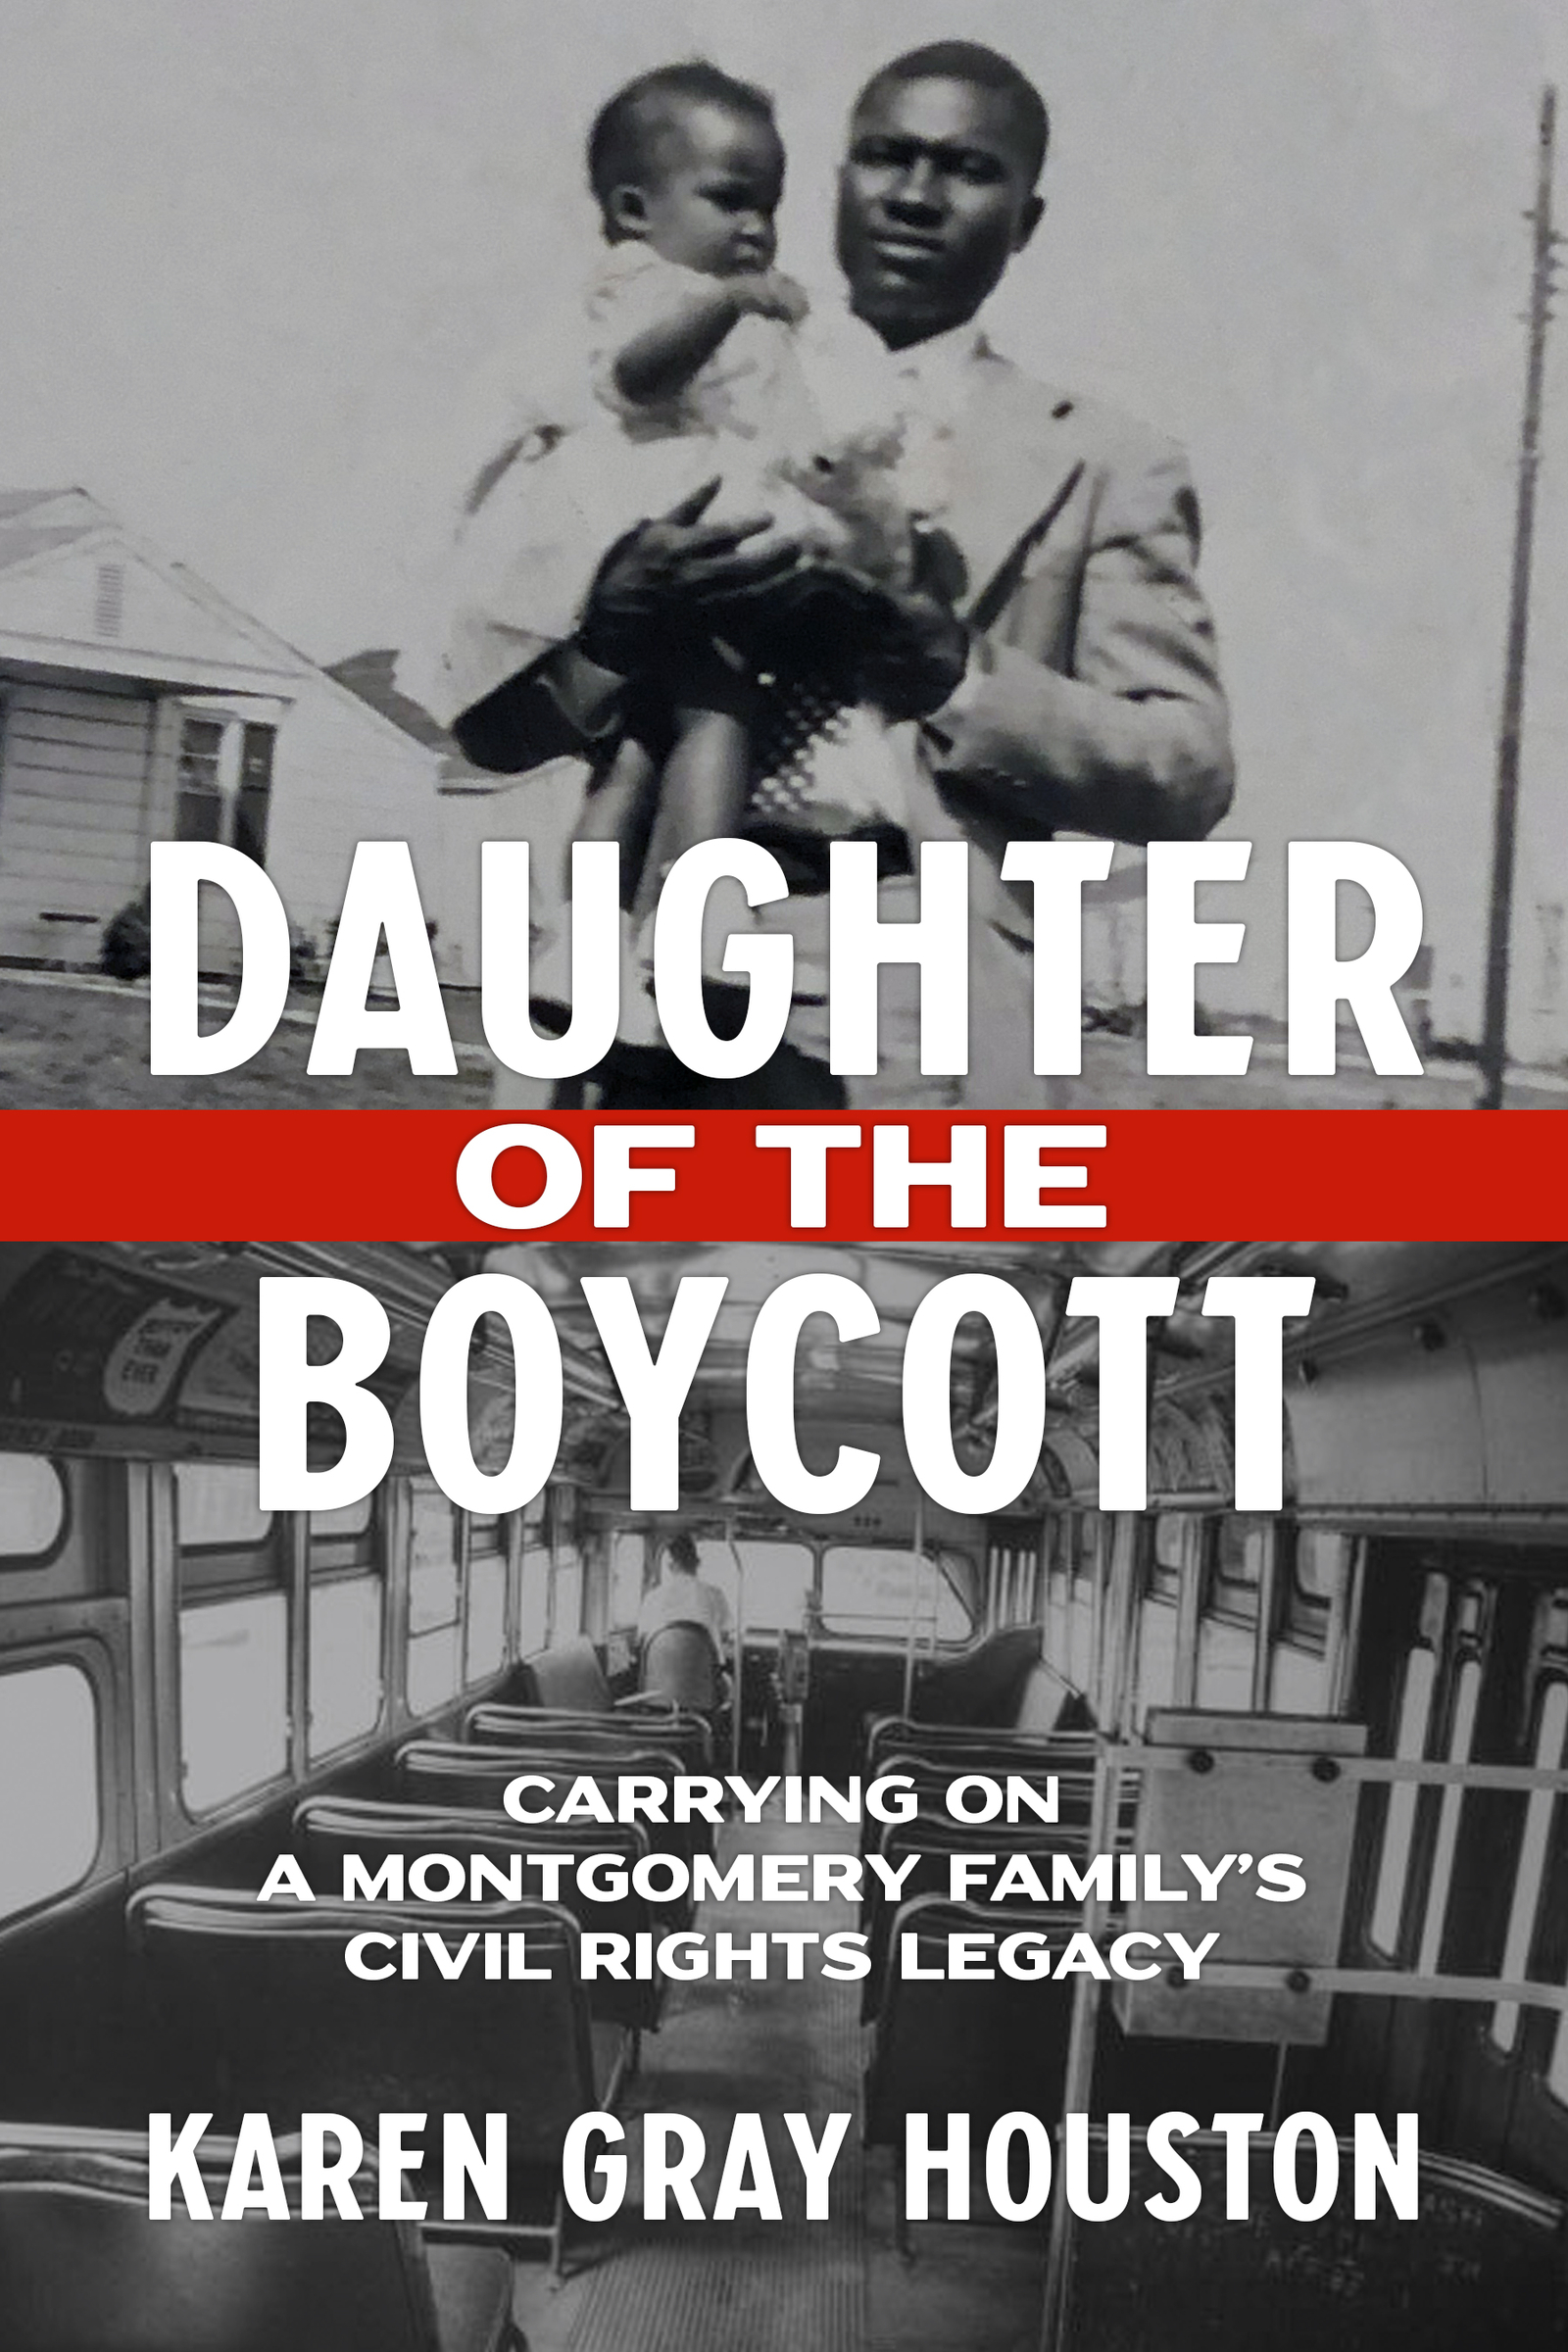 Daughter of the Boycott Carrying On a Montgomery Family's Civil Rights Legacy